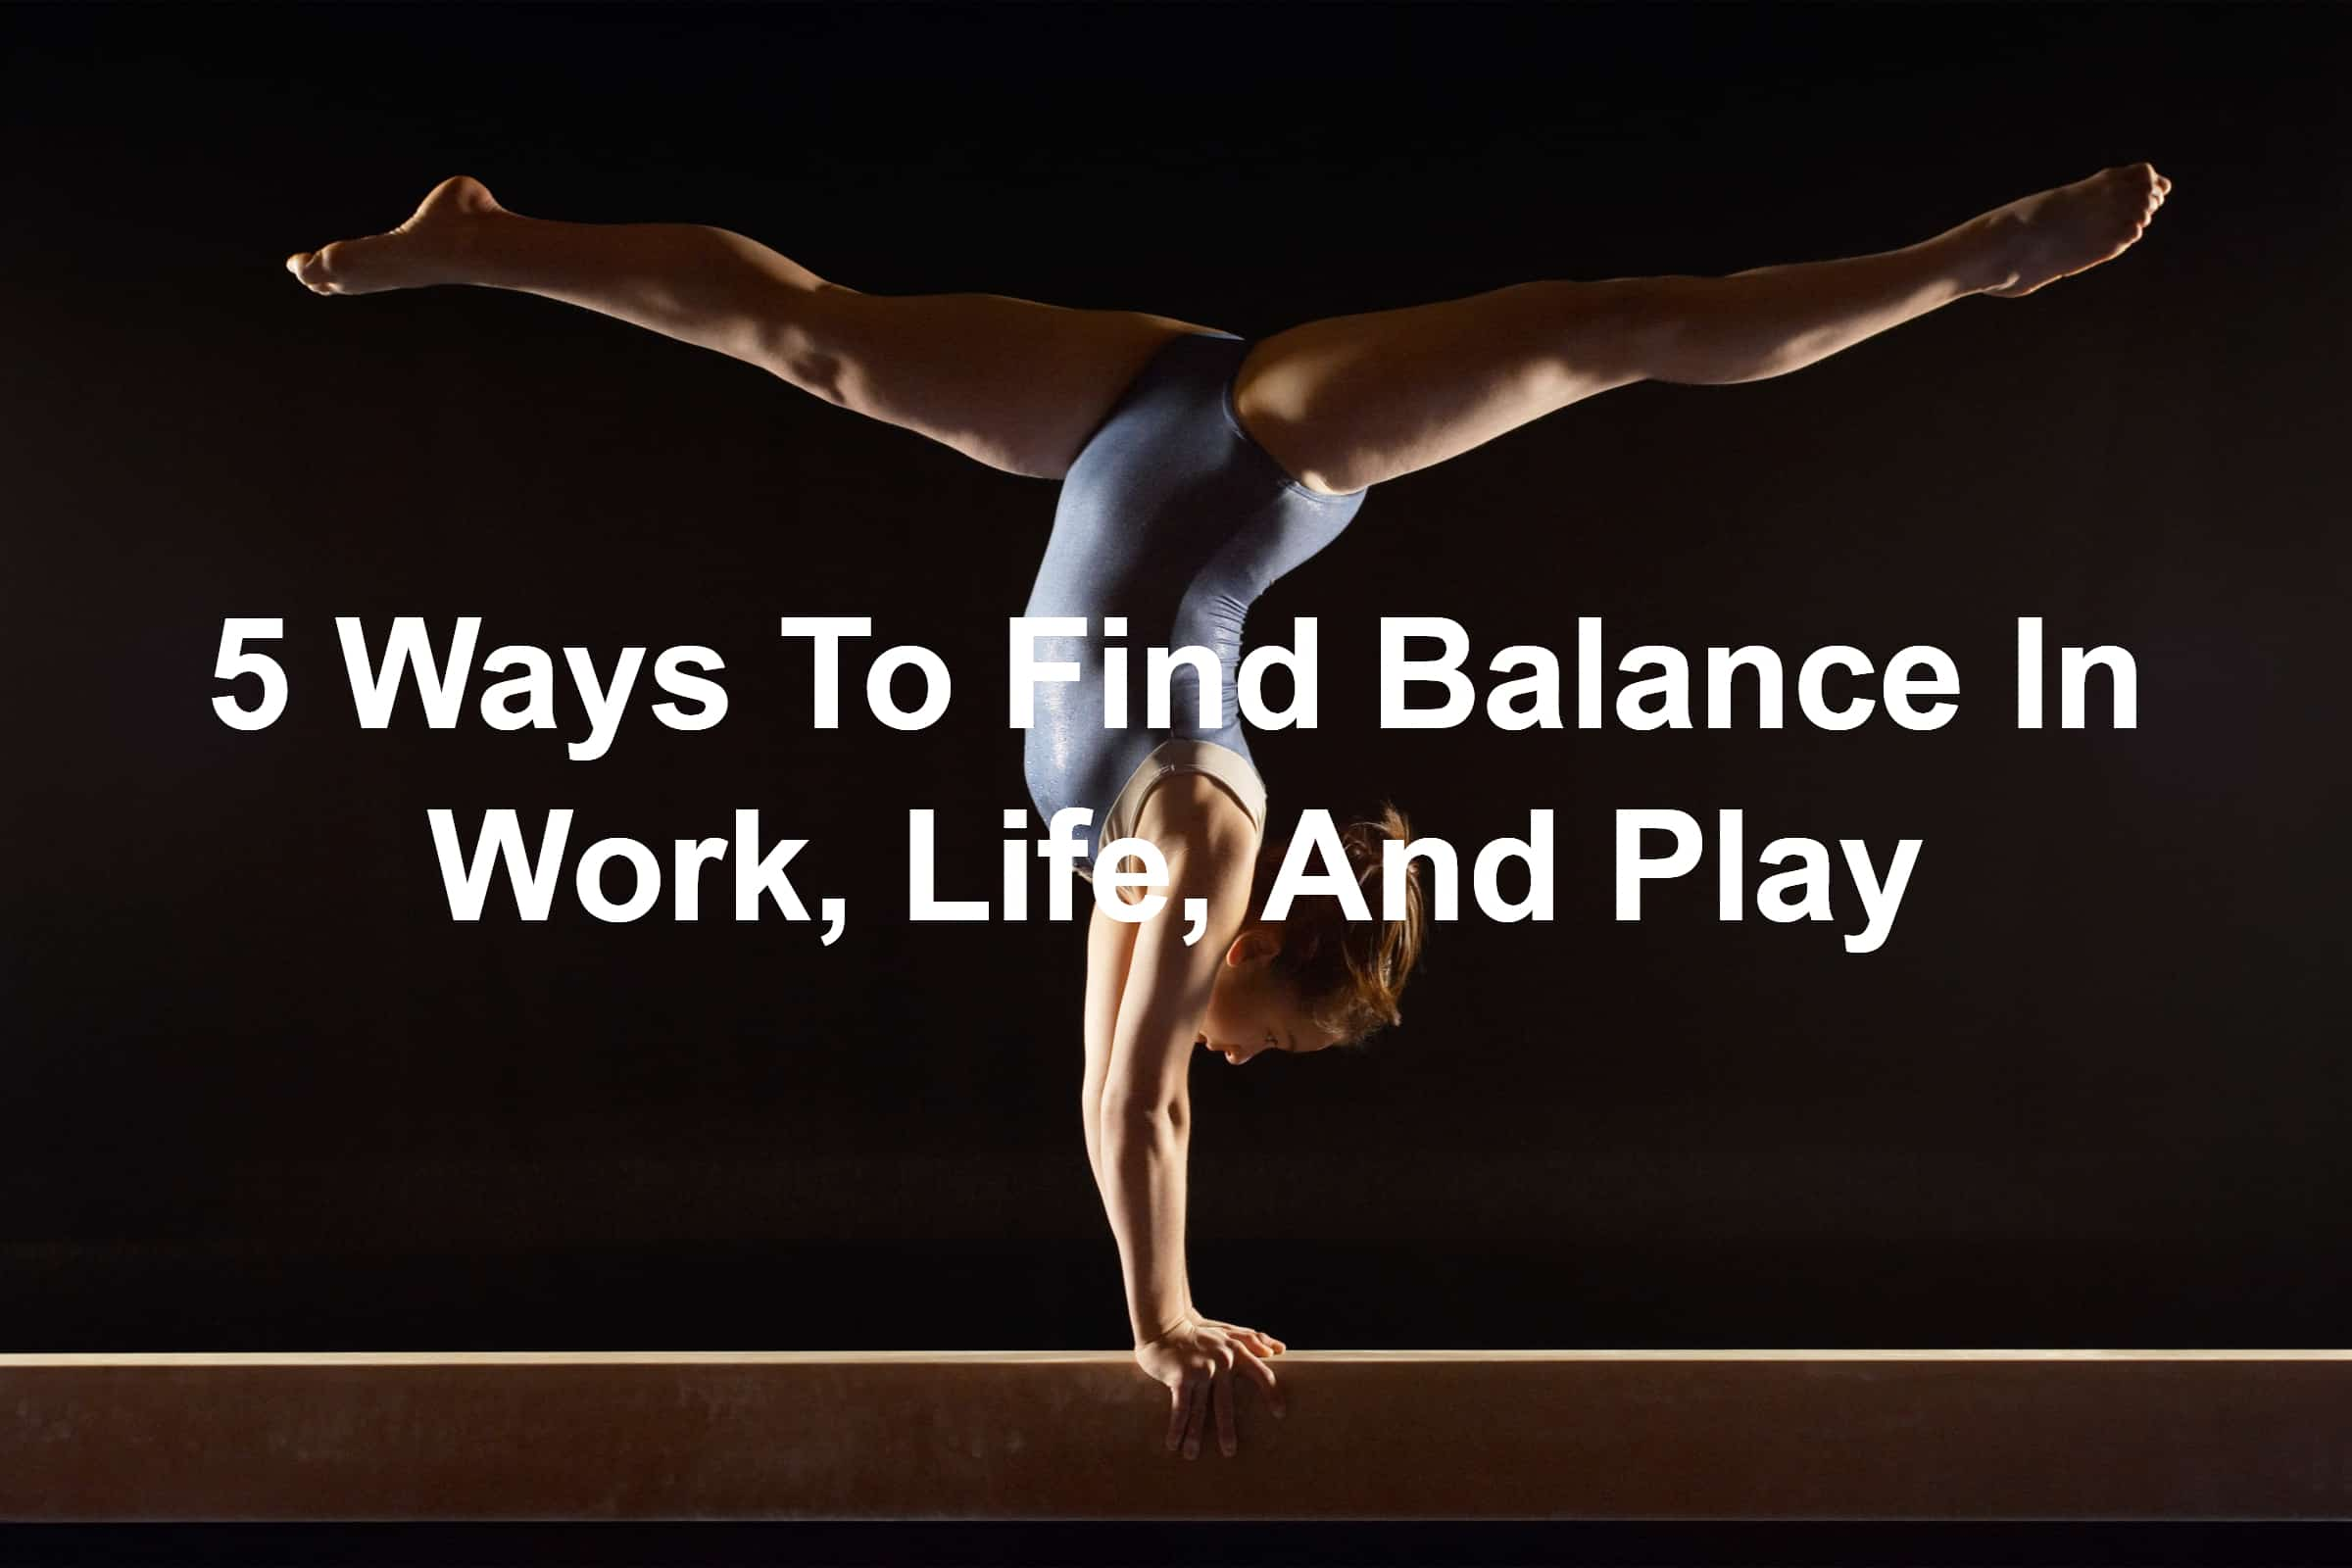 Leaders need to find work life balance